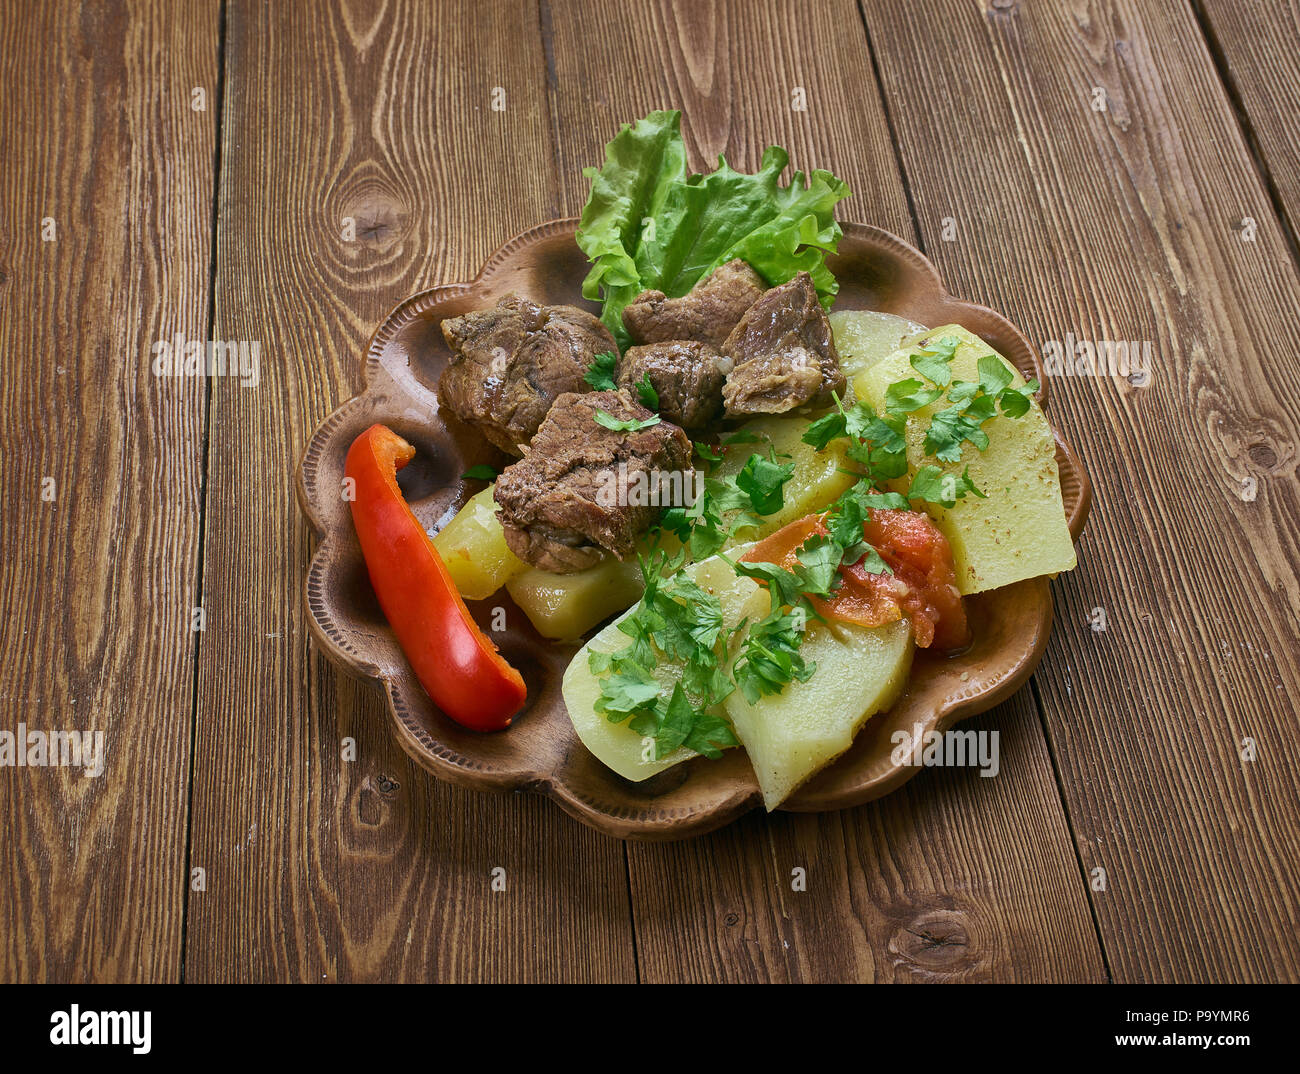 shturyi fyidyi lyivza - Ossetian dish with half-mulled beef and potatoes,  caucasian cuisine. - Stock Image